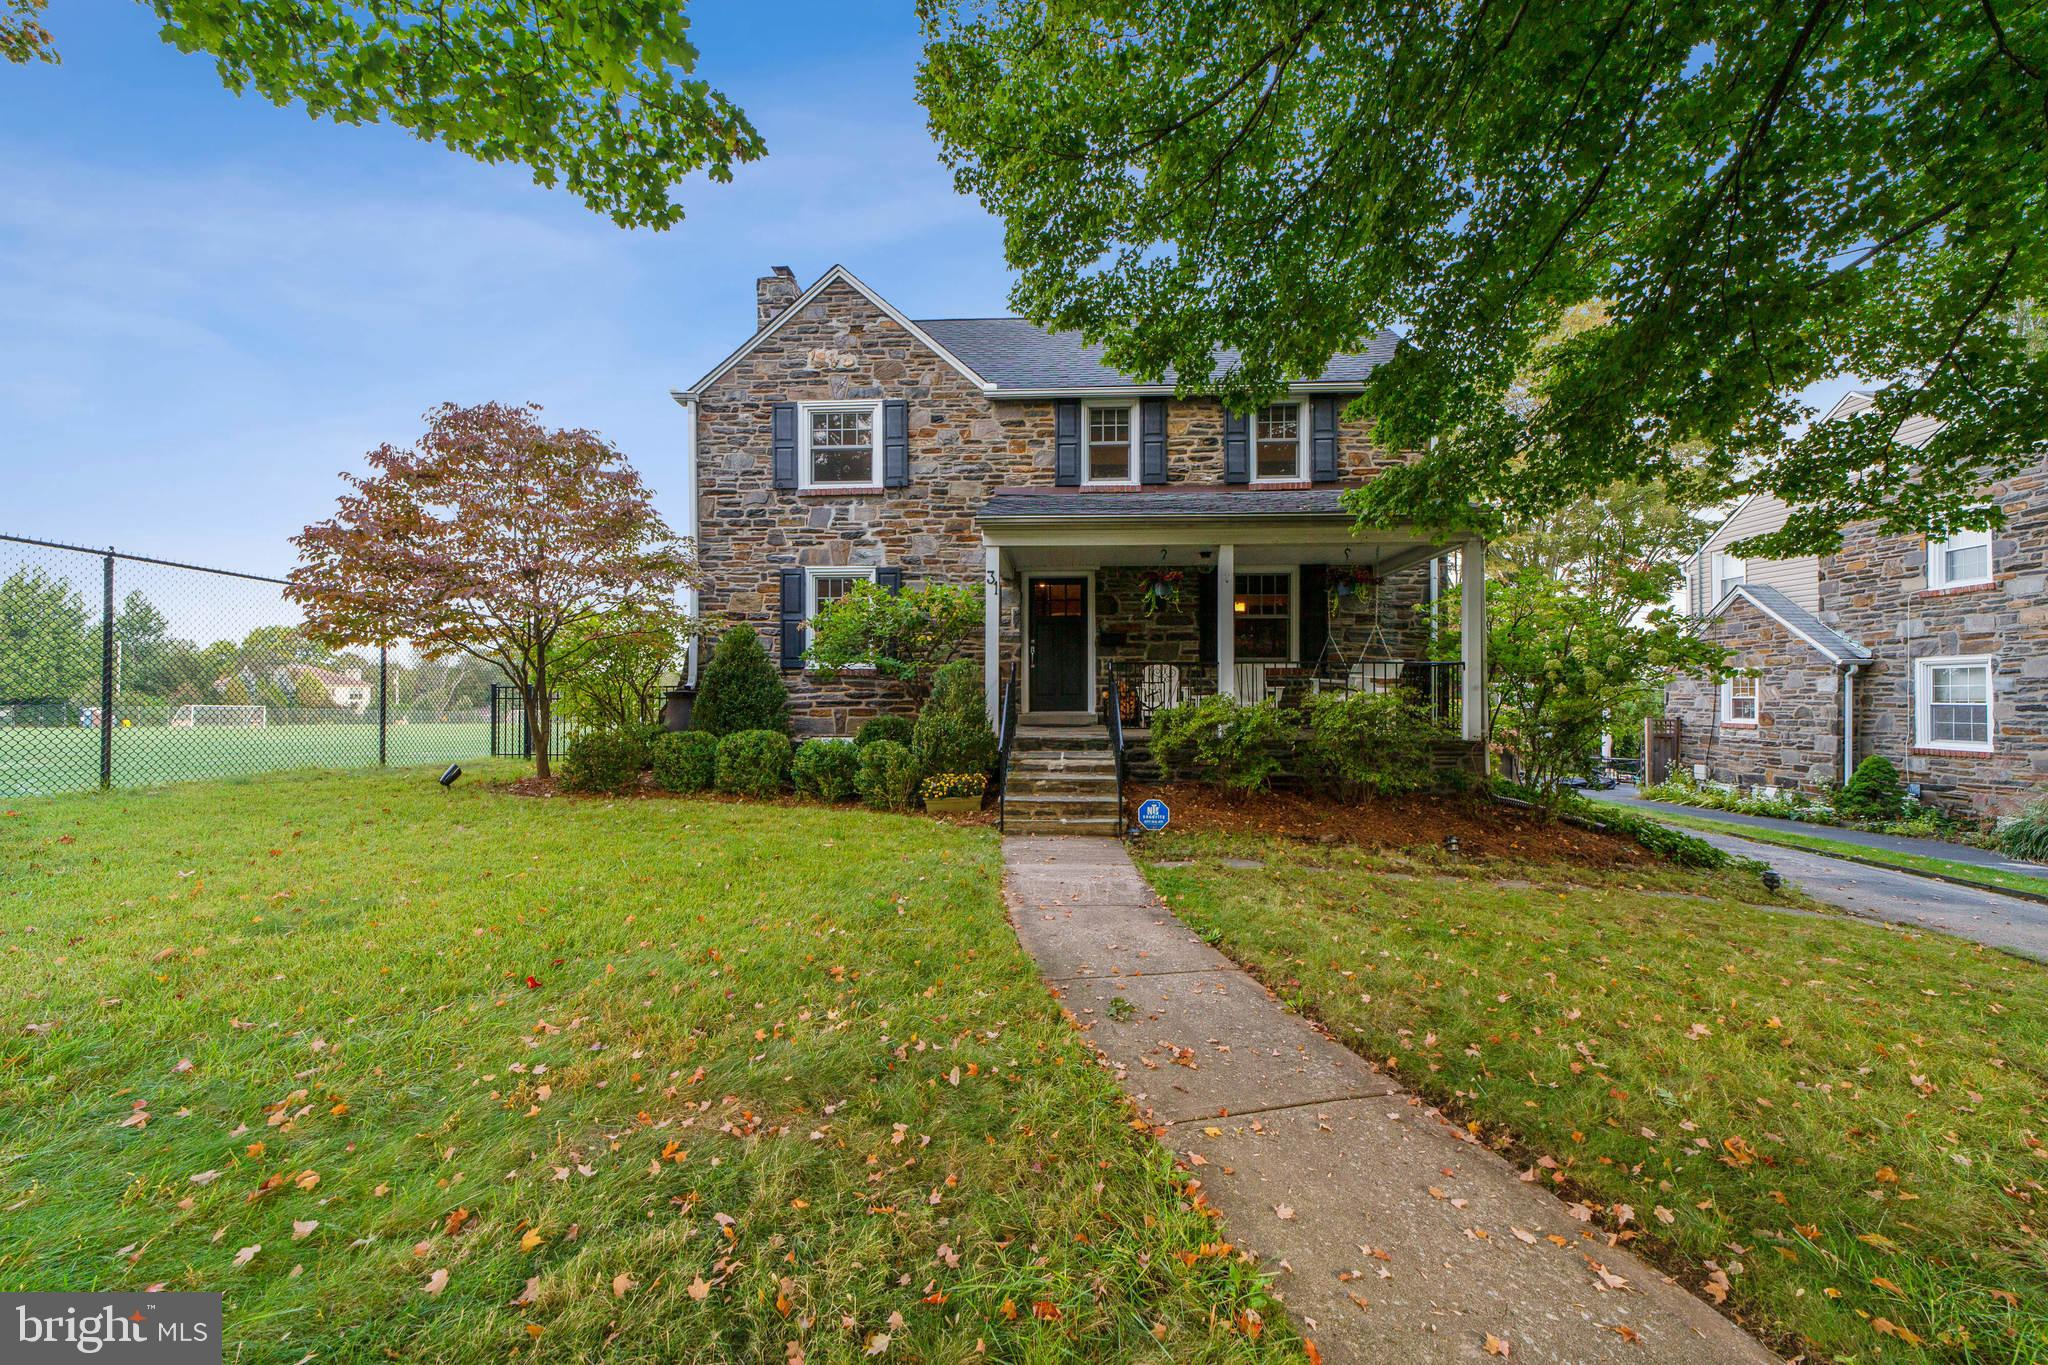 Gorgeous stone Colonial in the most popular neighborhood in Bala Cynwyd! As you approach the house, you'll find an inviting covered porch, perfect for relaxing and chatting with neighbors and friends as they pass by, on an evening stroll, heading to the athletic fields, or a visit to the free library on the front lawn. This street has a genuine neighborhood feel. Upon entering, you'll notice the hardwood oak floors and convenient drop space. The living room features a lovely fireplace and lots of natural light with a view of the open athletic fields (as opposed to another house) out the windows that also feature custom top-down bottom-up shades. Recessed lighting and tasteful media cabinets, which are included, make the best use of the space. Across the center hallway is a large dining room. The living room opens to a back corridor with access to the updated powder room, basement, hall closet and kitchen. The well-designed kitchen accommodates a comfortable eat-in area with a built-in storage bench. Soapstone counters, a Delta Touch faucet, high-end stainless steel appliances (Jenn-Air, Bosch, Frigidaire) and tumbled marble backsplash with black, white and gray palette—no updating needed in the kitchen! The back door leads to brand new flagstone steps down to driveway garage as well as back yard that borders expansive athletic fields complemented by landscaping that features year-round appeal. Upstairs are four generous bedrooms and two updated full baths. The rear bedroom provides access to a spacious roof deck with a unique private feel, featuring unobstructed, picturesque views of the sunset. The second floor includes ample closet space. Walk-up access to a large, floored attic offers plenty of additional storage . Down in the basement, you'll find a beautiful finished space including a private office with a window and a large open living space with a newer half bath. The mini-split unit here guarantees comfort in every season. A wall of built-in white cabinetry 